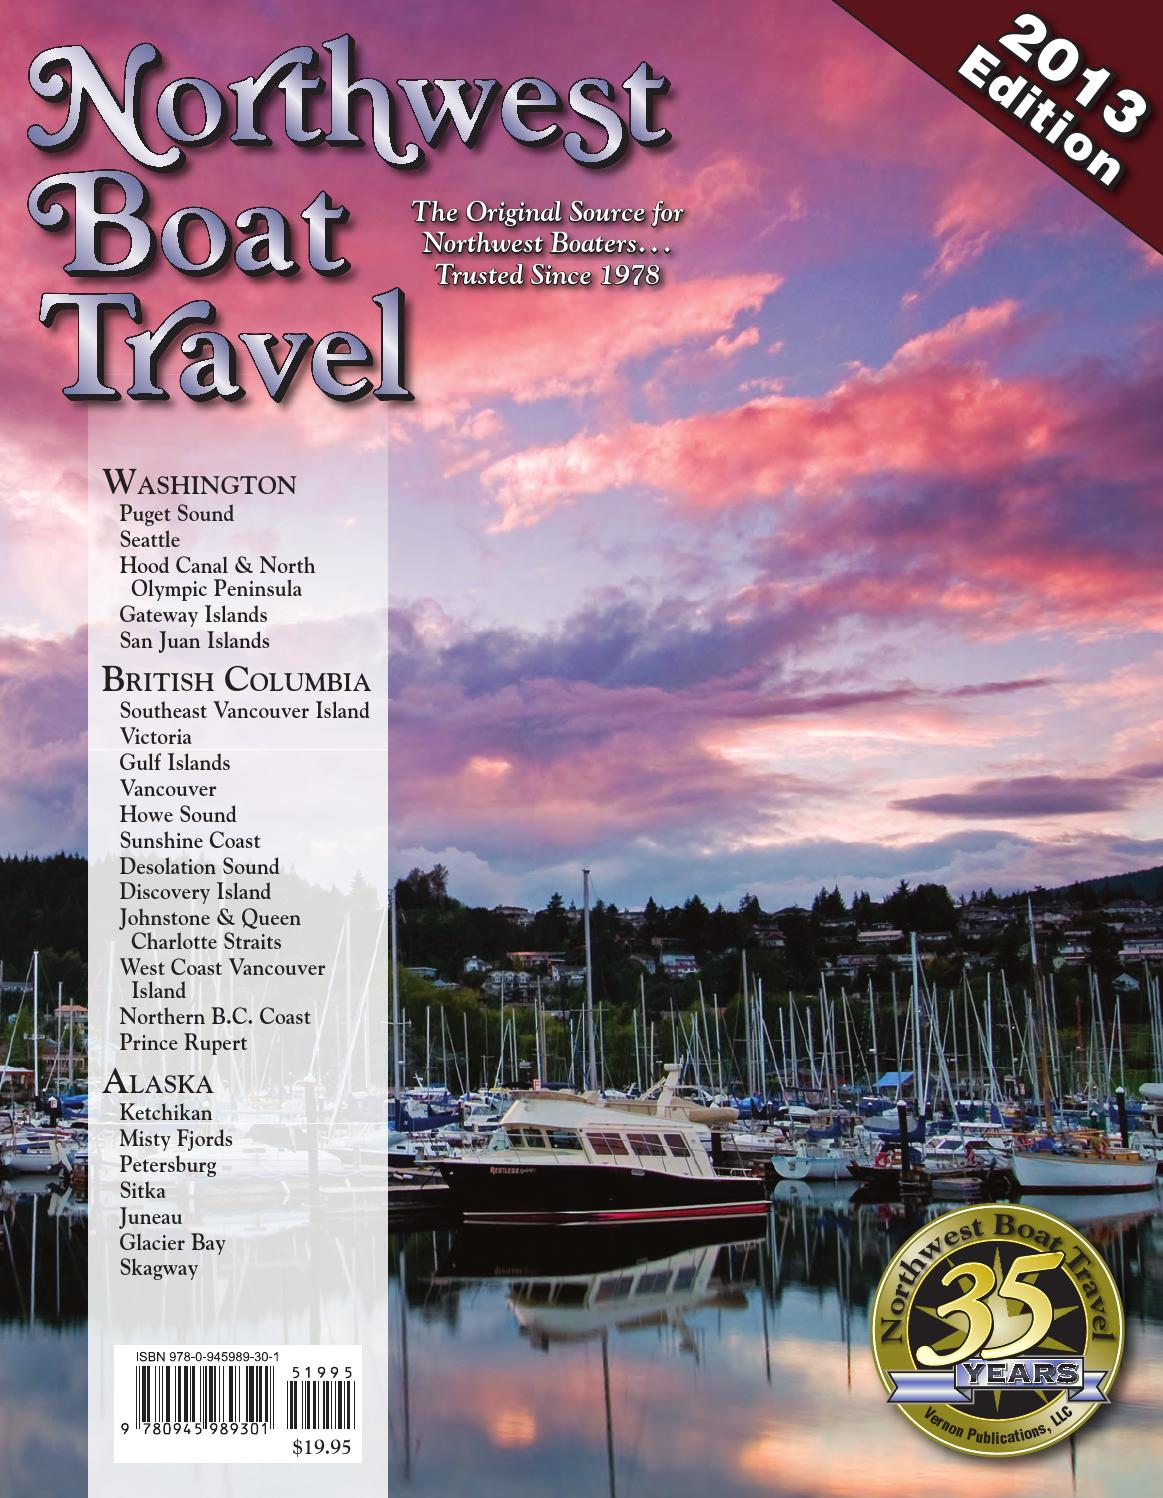 Northwest Boat Travel 2013 by Vernon Publications - issuu